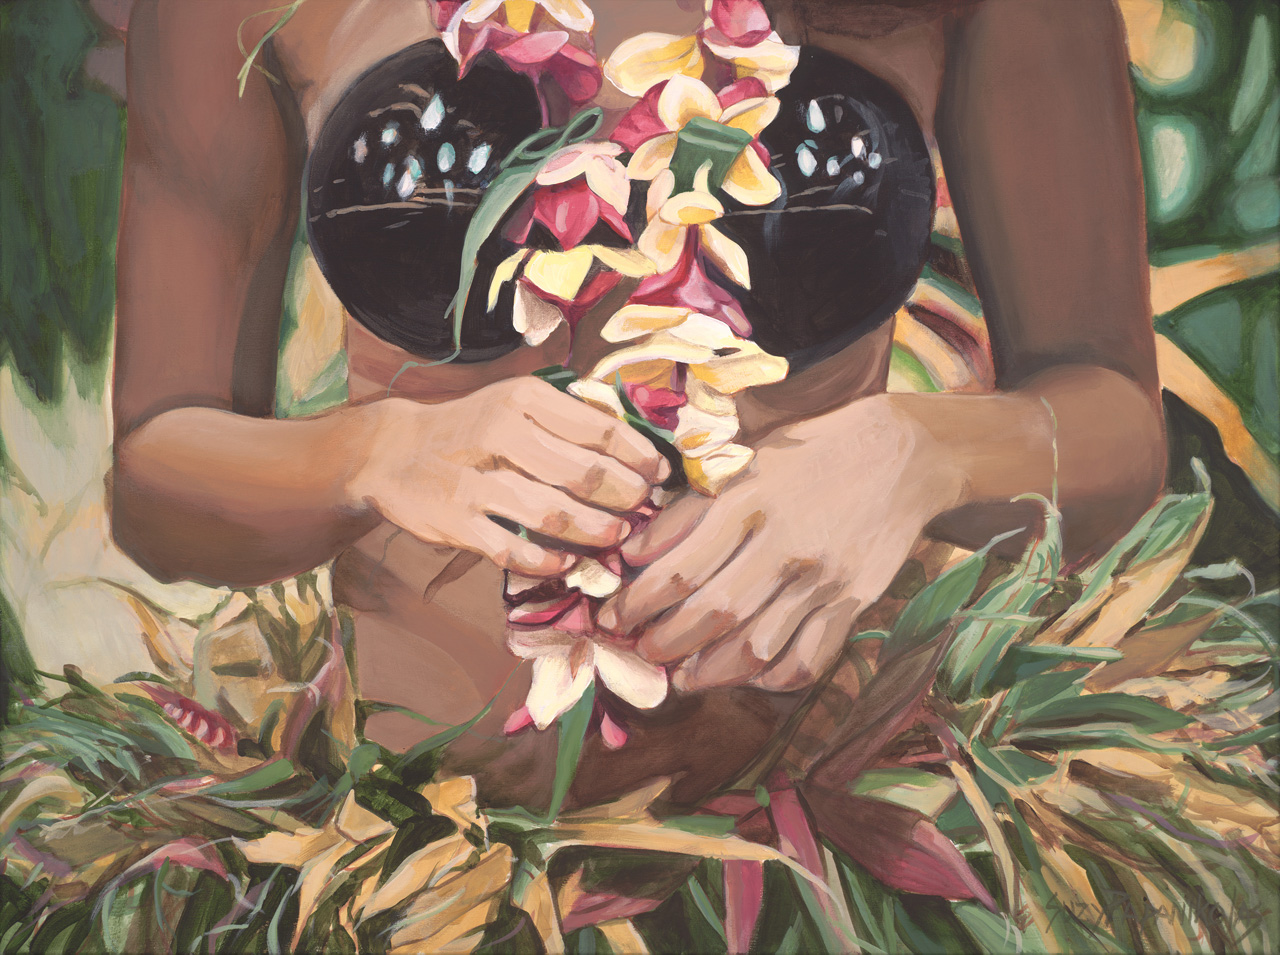 The torso of a female hula dancer with a coconut shell bra, plumeria lei, and ti leaf skirt